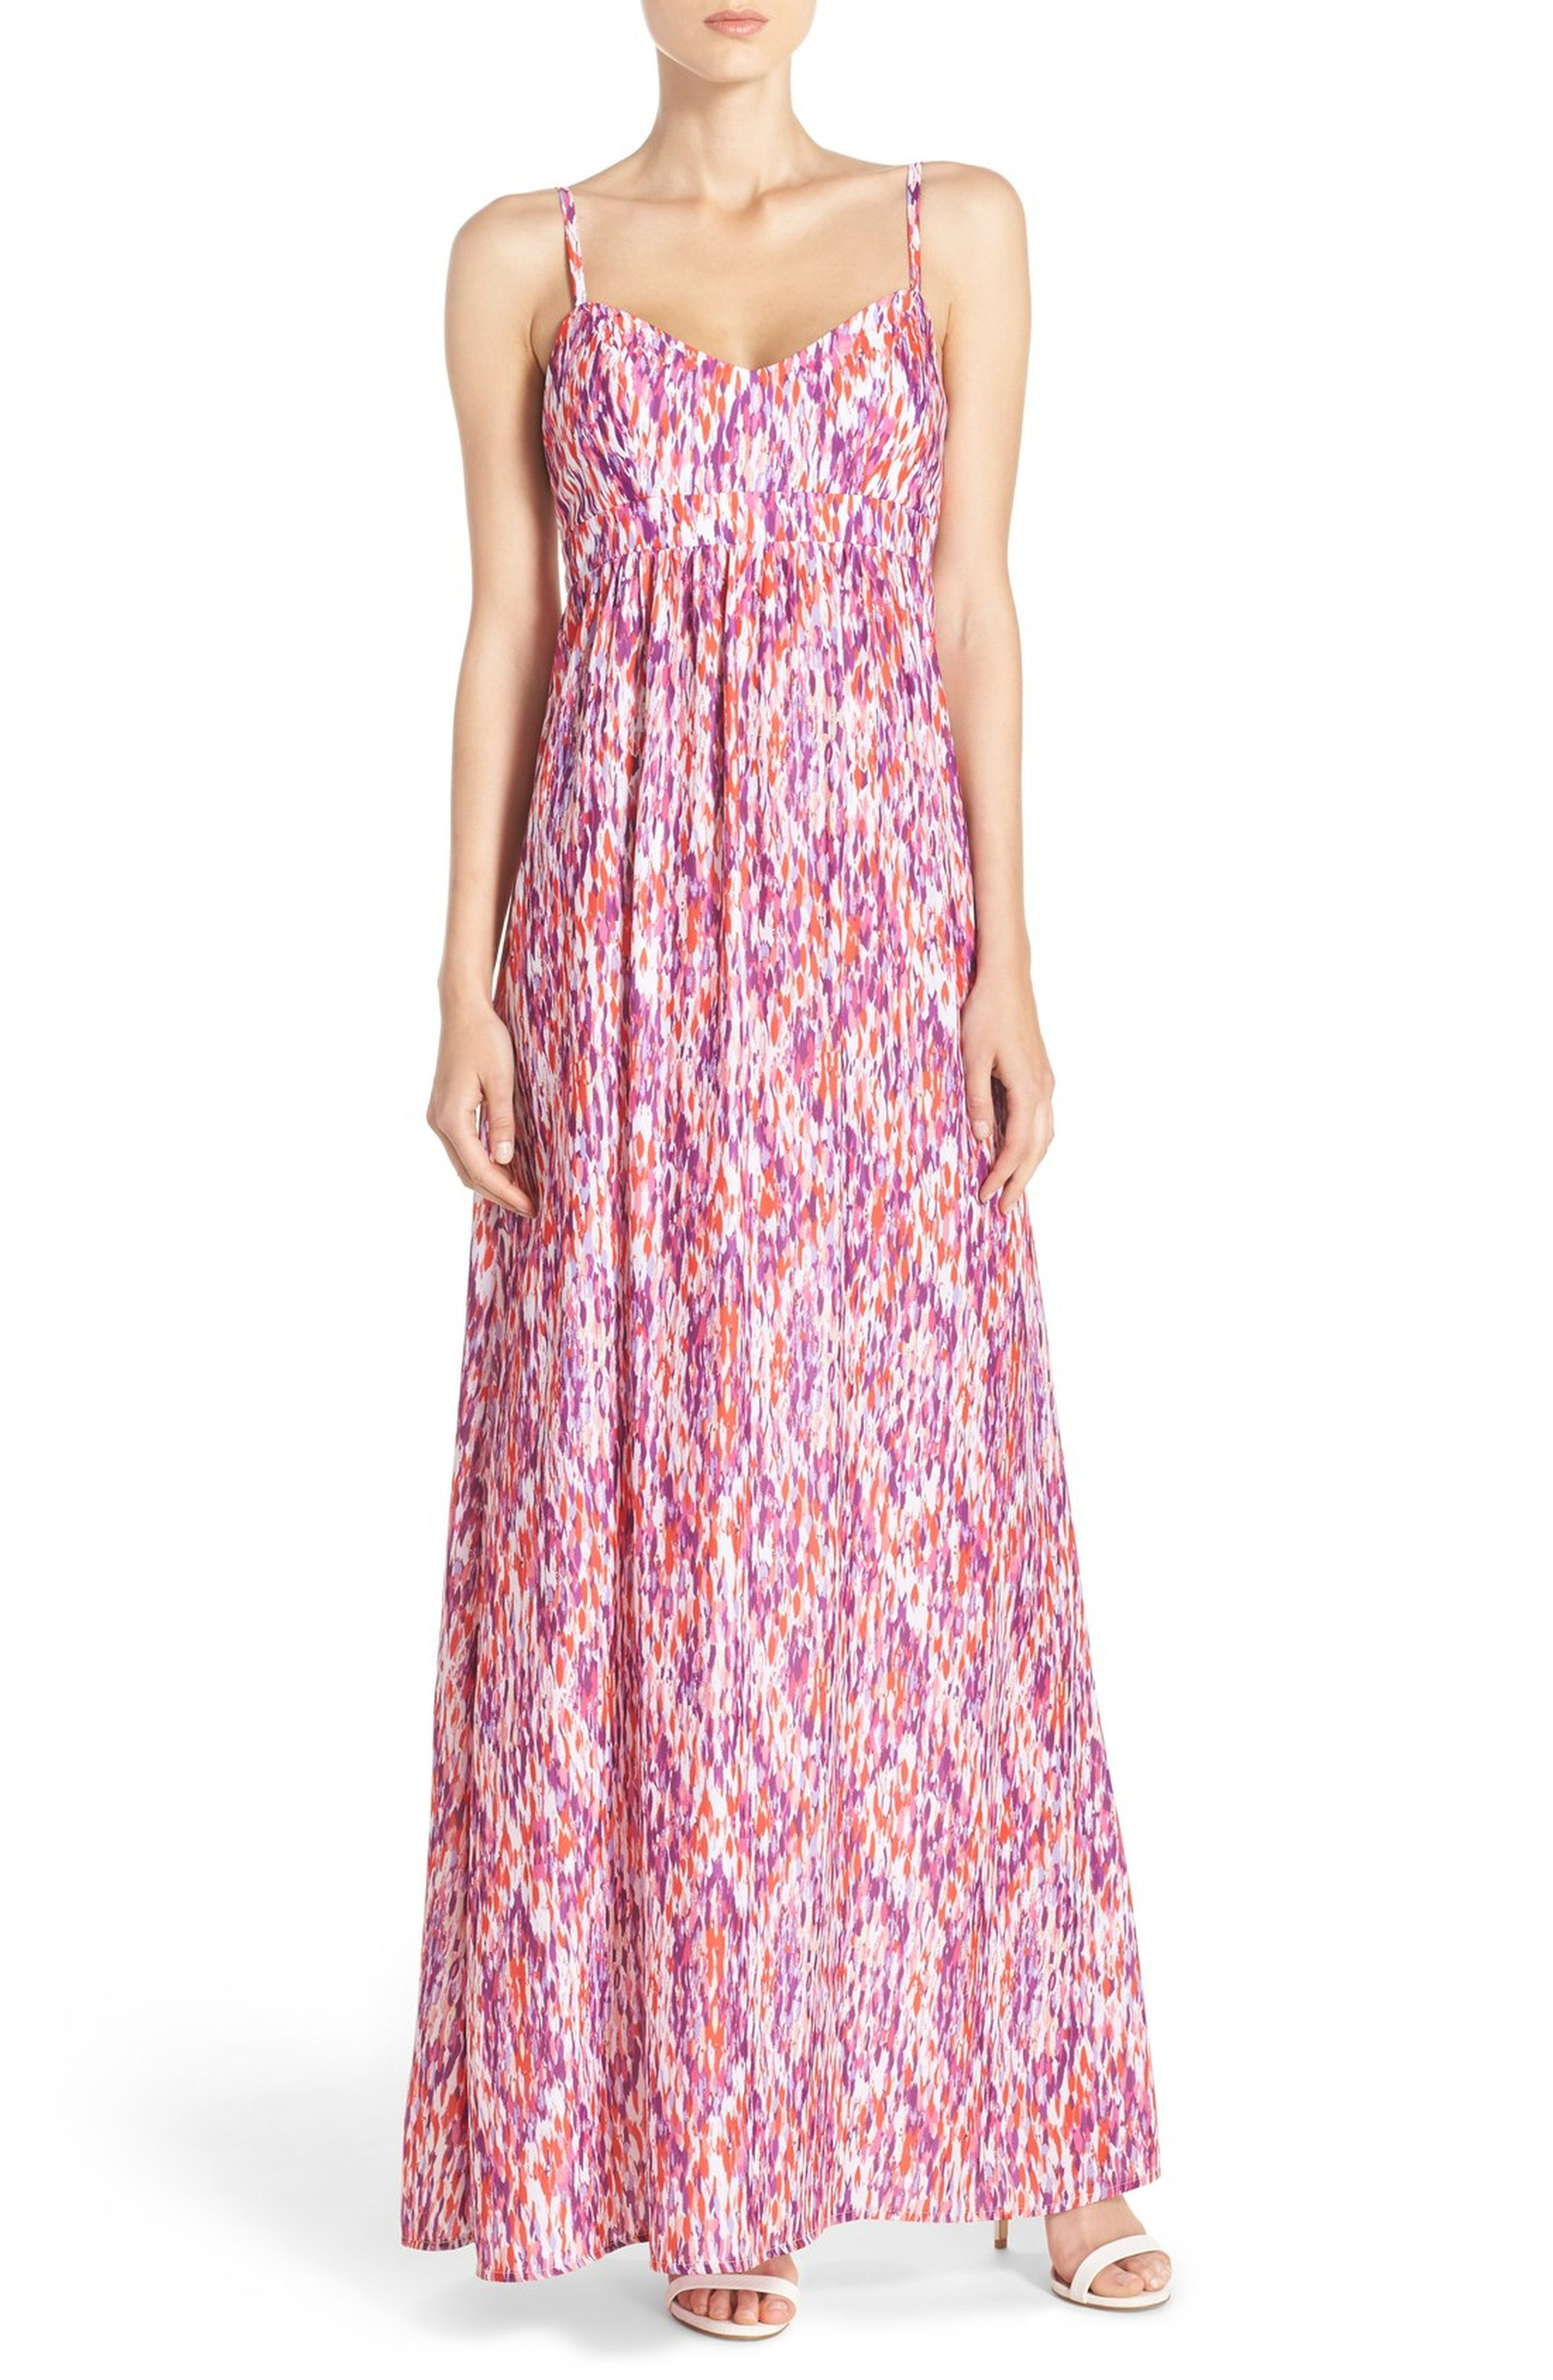 ed46d0e3c16 Main Image - Felicity   Coco Woven Maxi Dress (Regular   Petite) (Nordstrom  Exclusive)